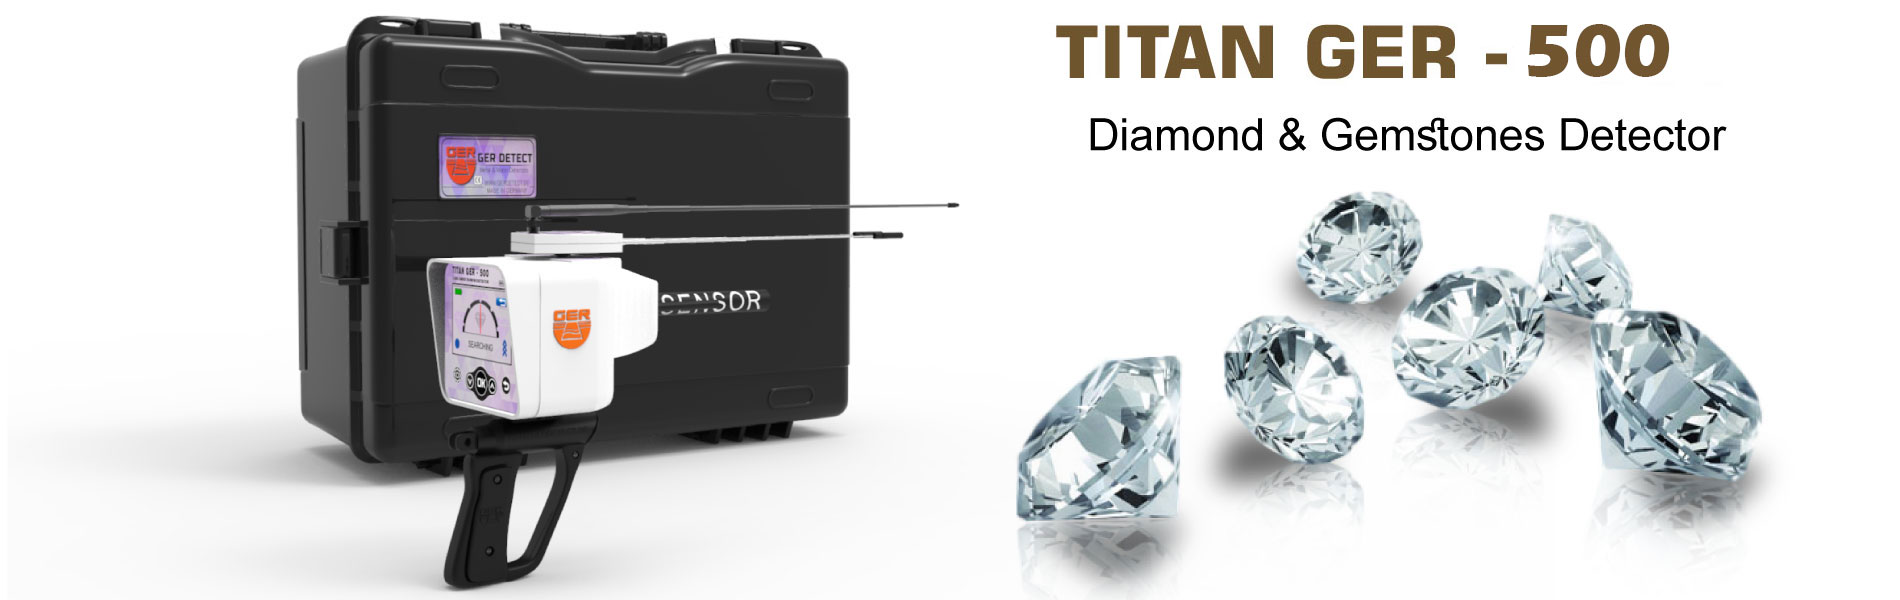 titan ger 500 device diamond gemstone locator